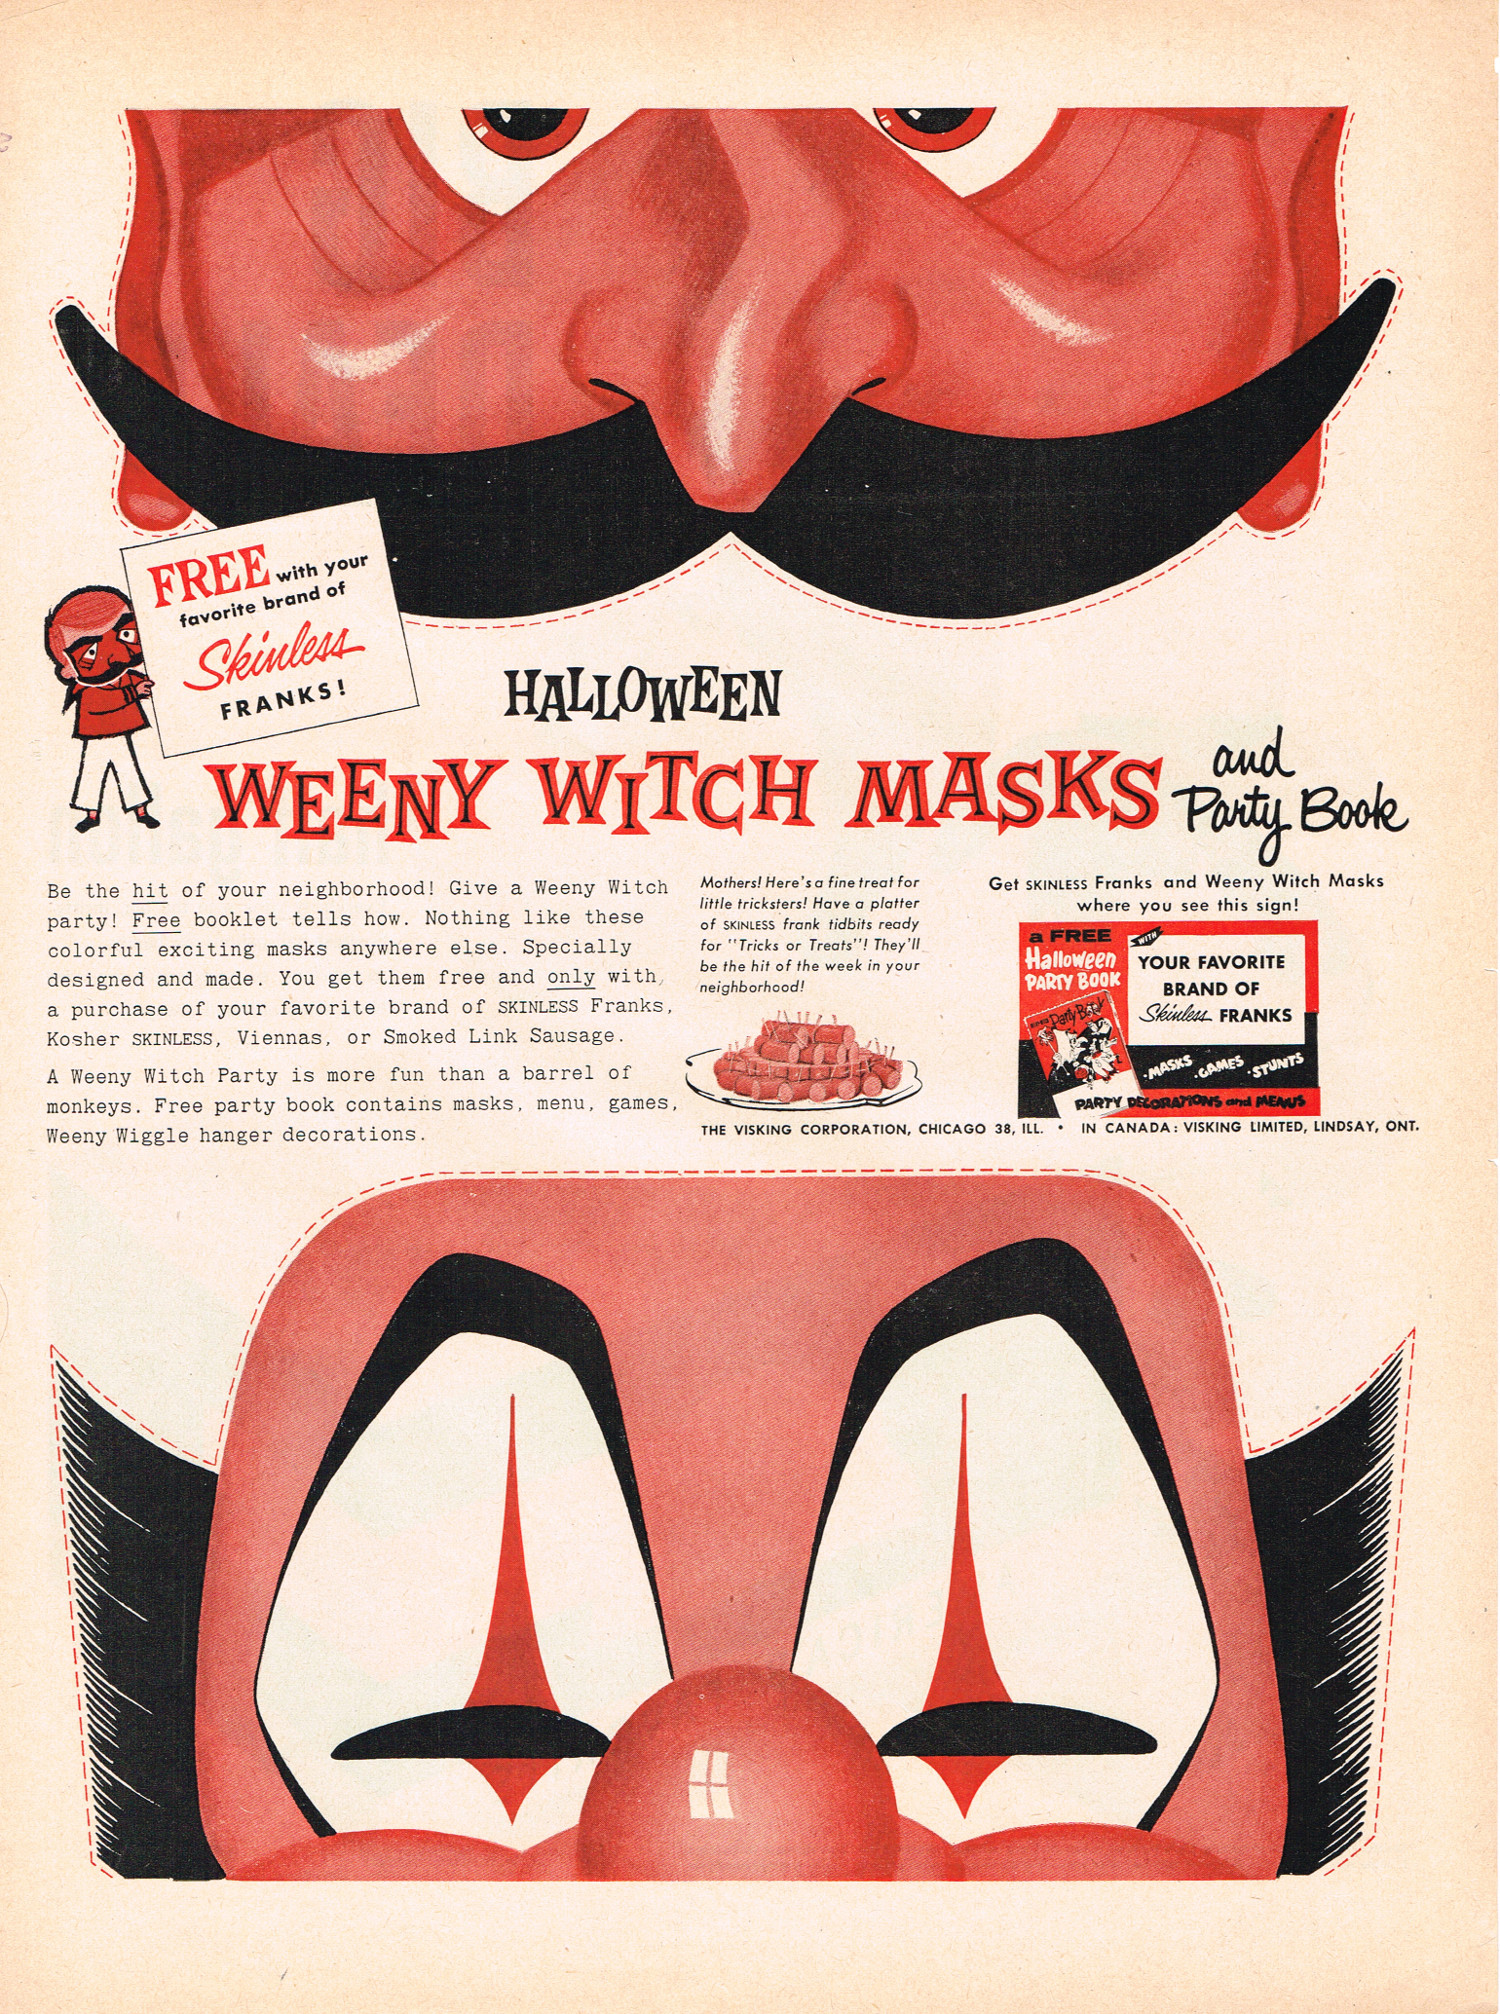 I Dont Often Equate Skinless Hotdogs With Halloween Witch Masks But When Do Want Weeny Just Not The Ones Shown Here Since THEY ARENT